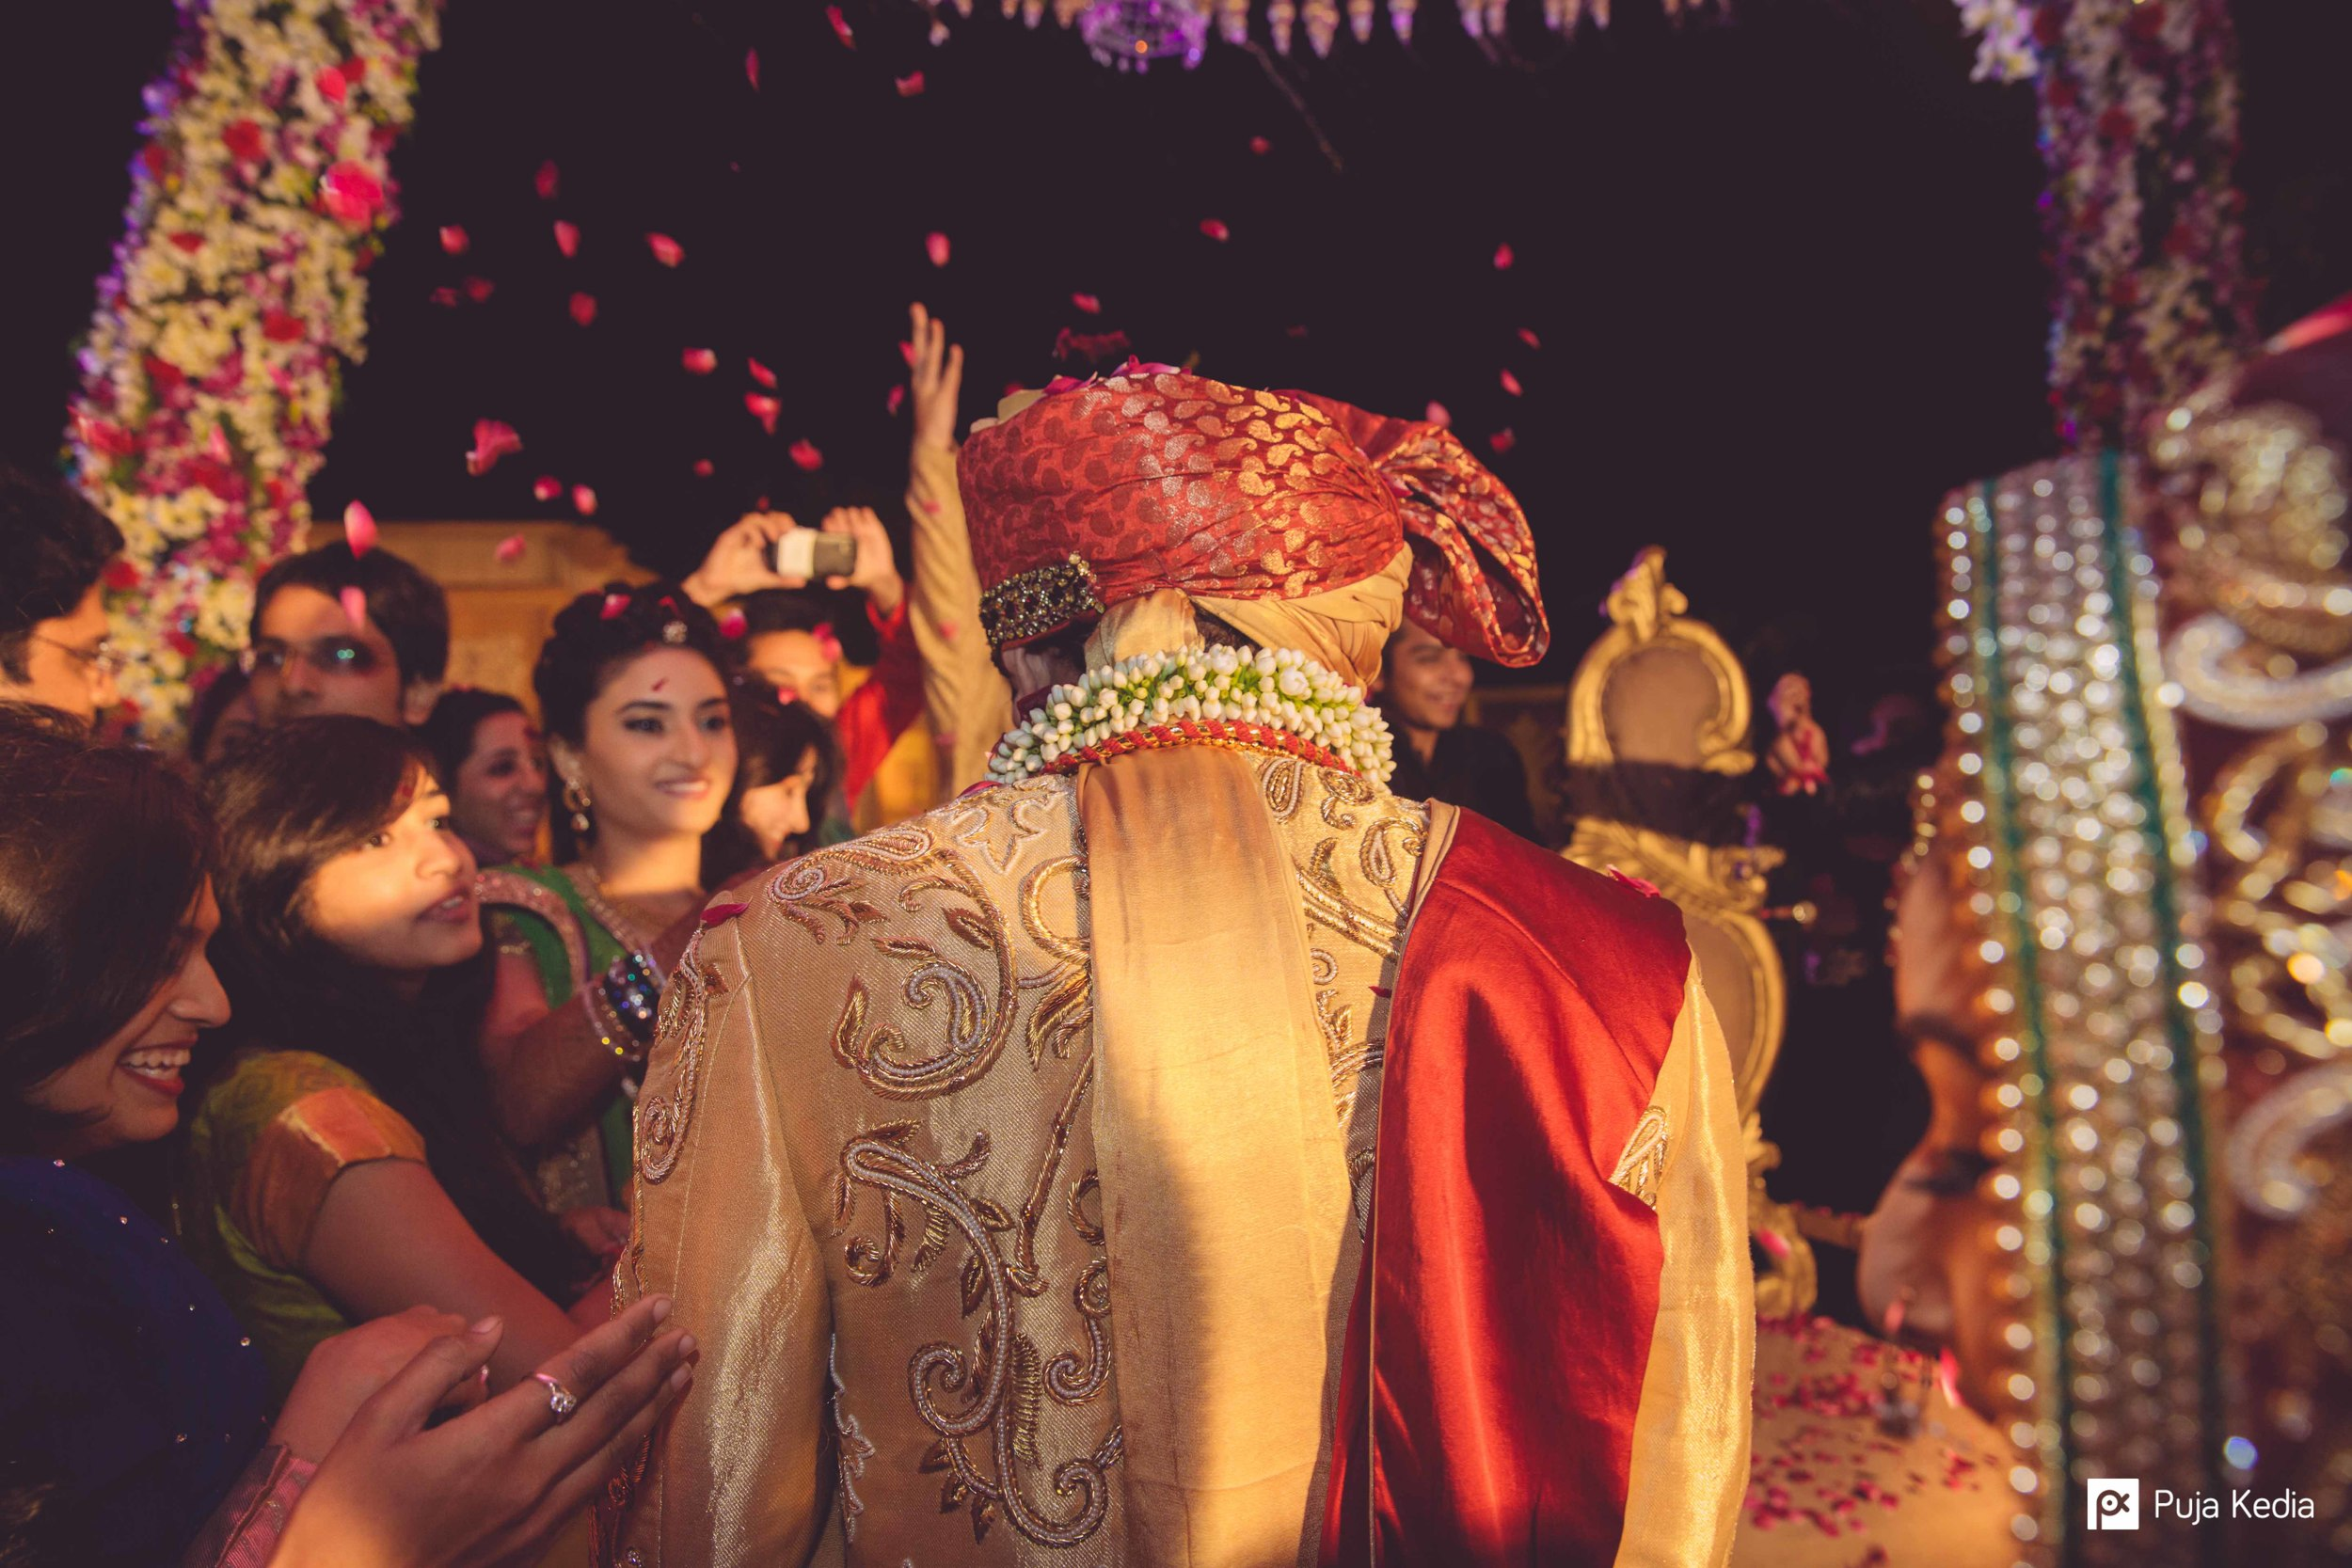 The Groom leading Her into his own world.